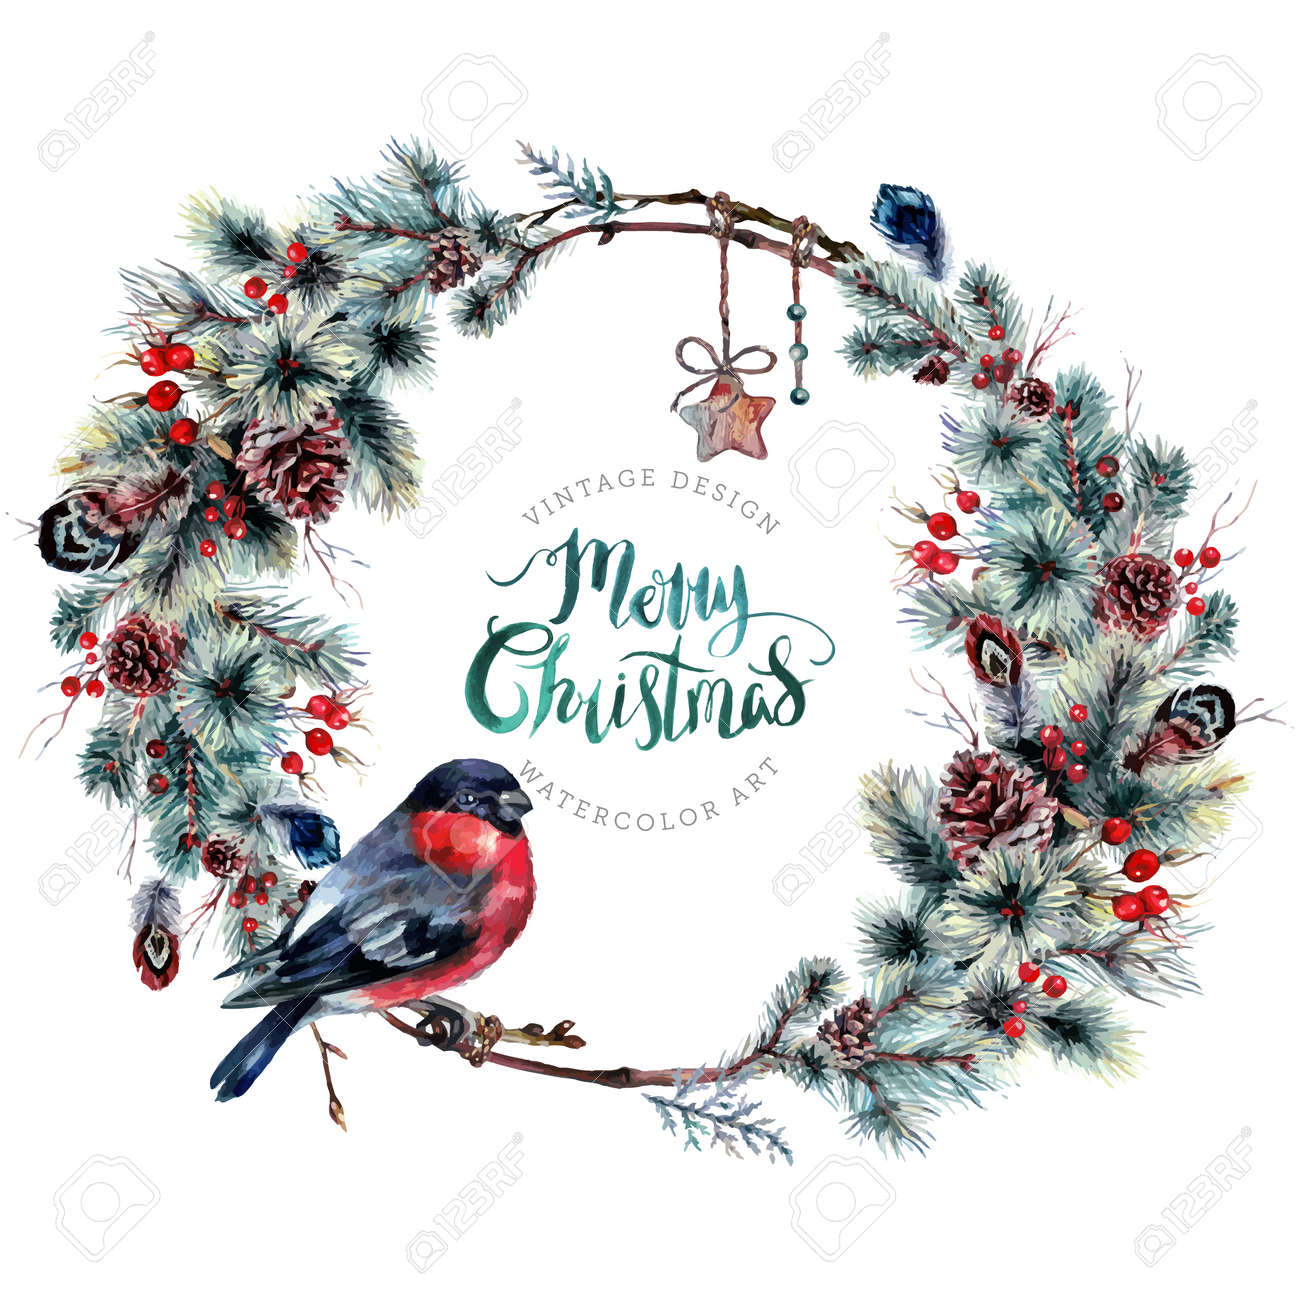 Watercolor Boho Christmas Wreath Made Of Twigs Pine Branches Royalty Free Cliparts Vectors And Stock Illustration Image 74140764